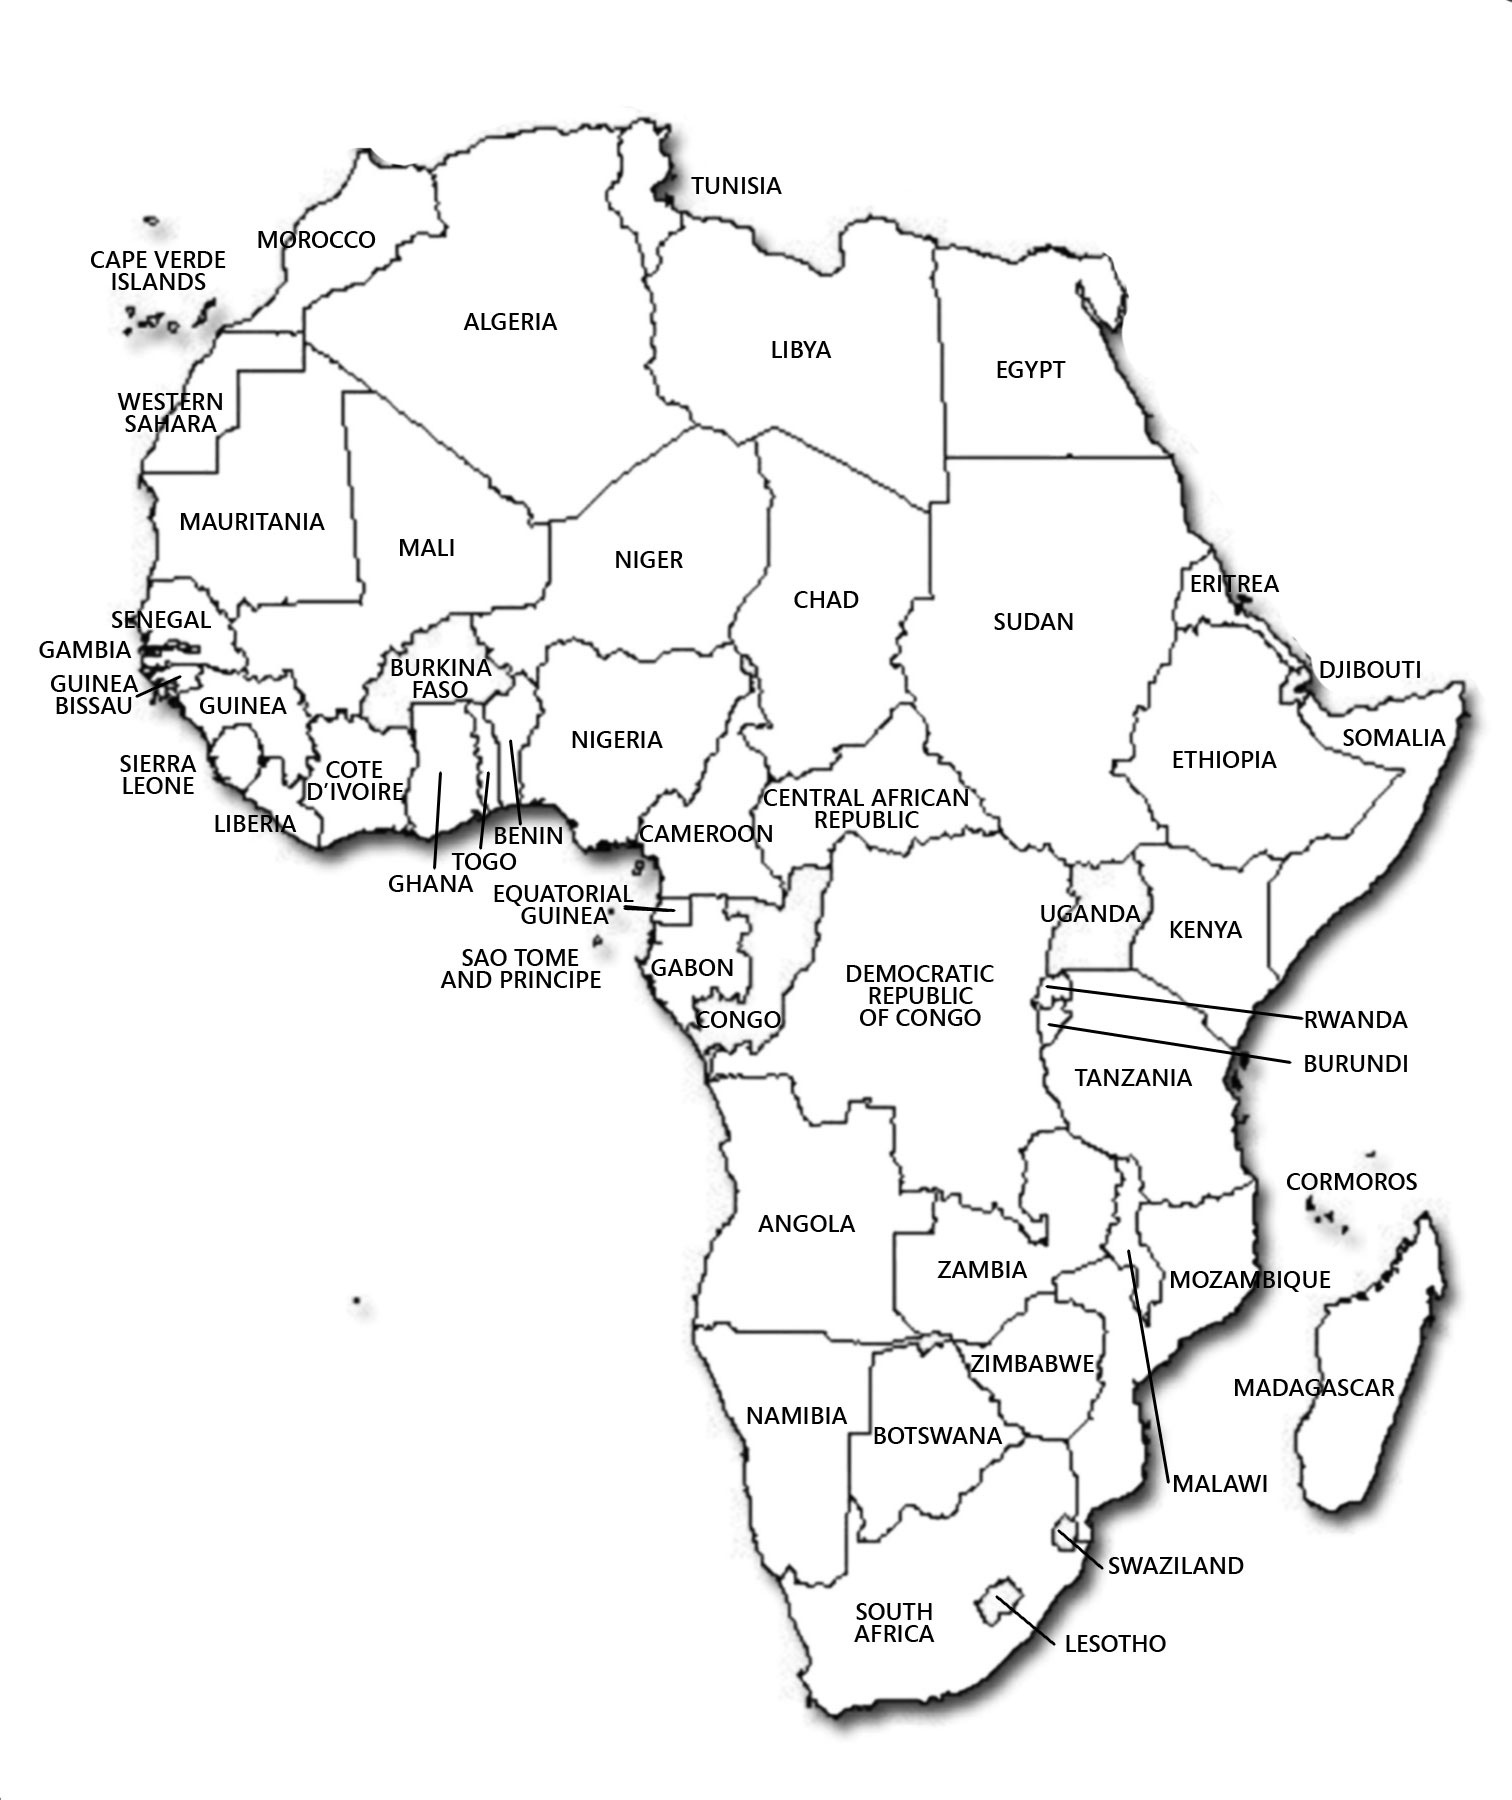 Maps Of Africa And African Countries Political Maps - Map africa